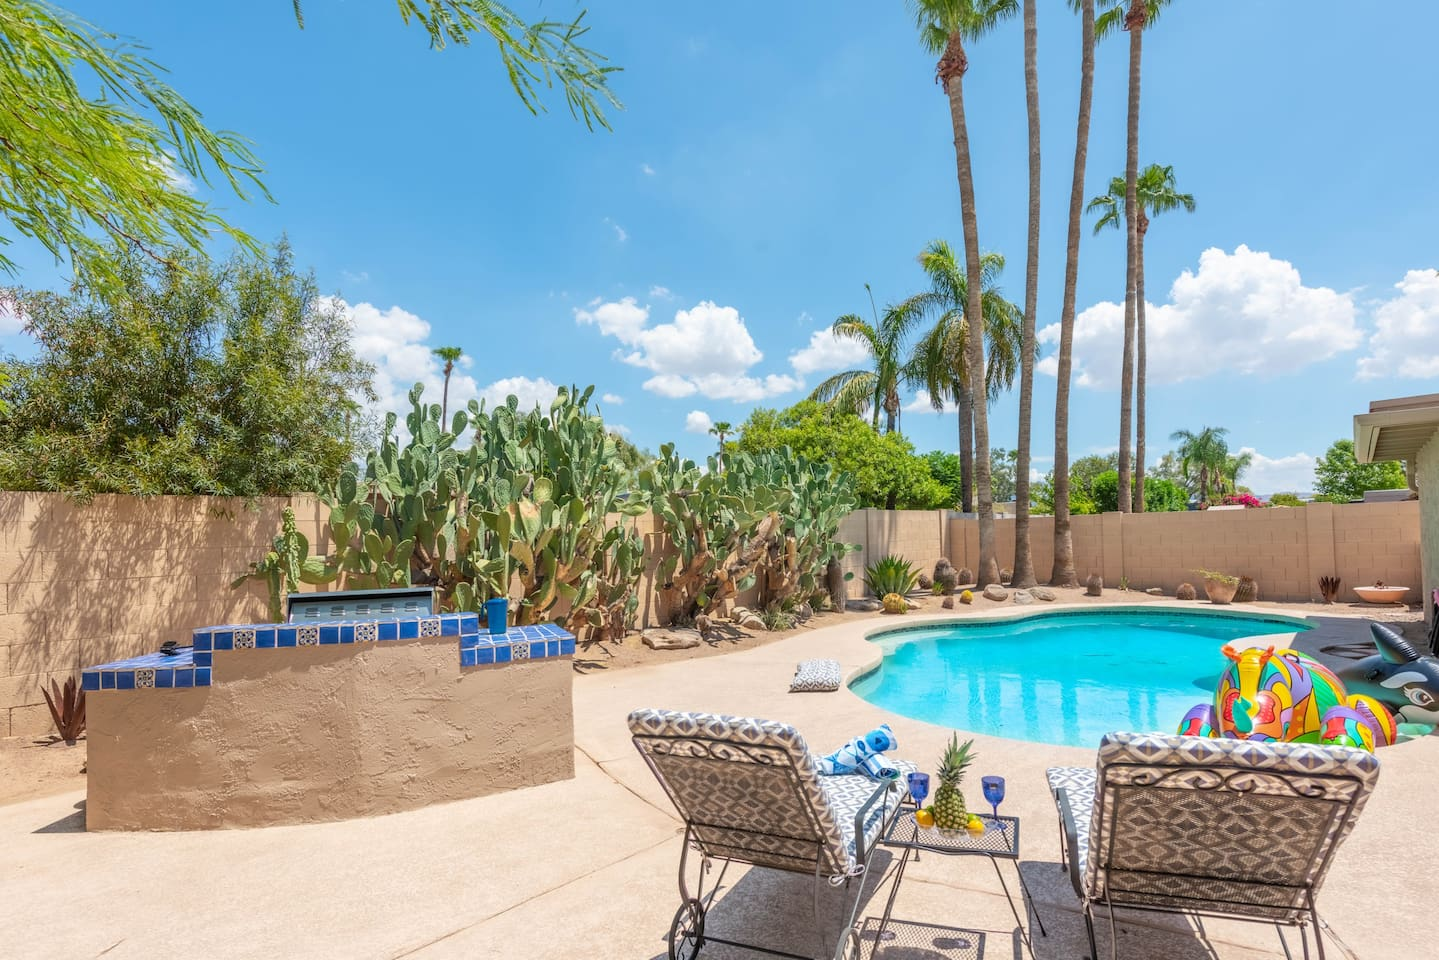 Everything you dream of for the best vacation in Scottsdale! Location is unbeatable and the house has more to offer than you can imagine!